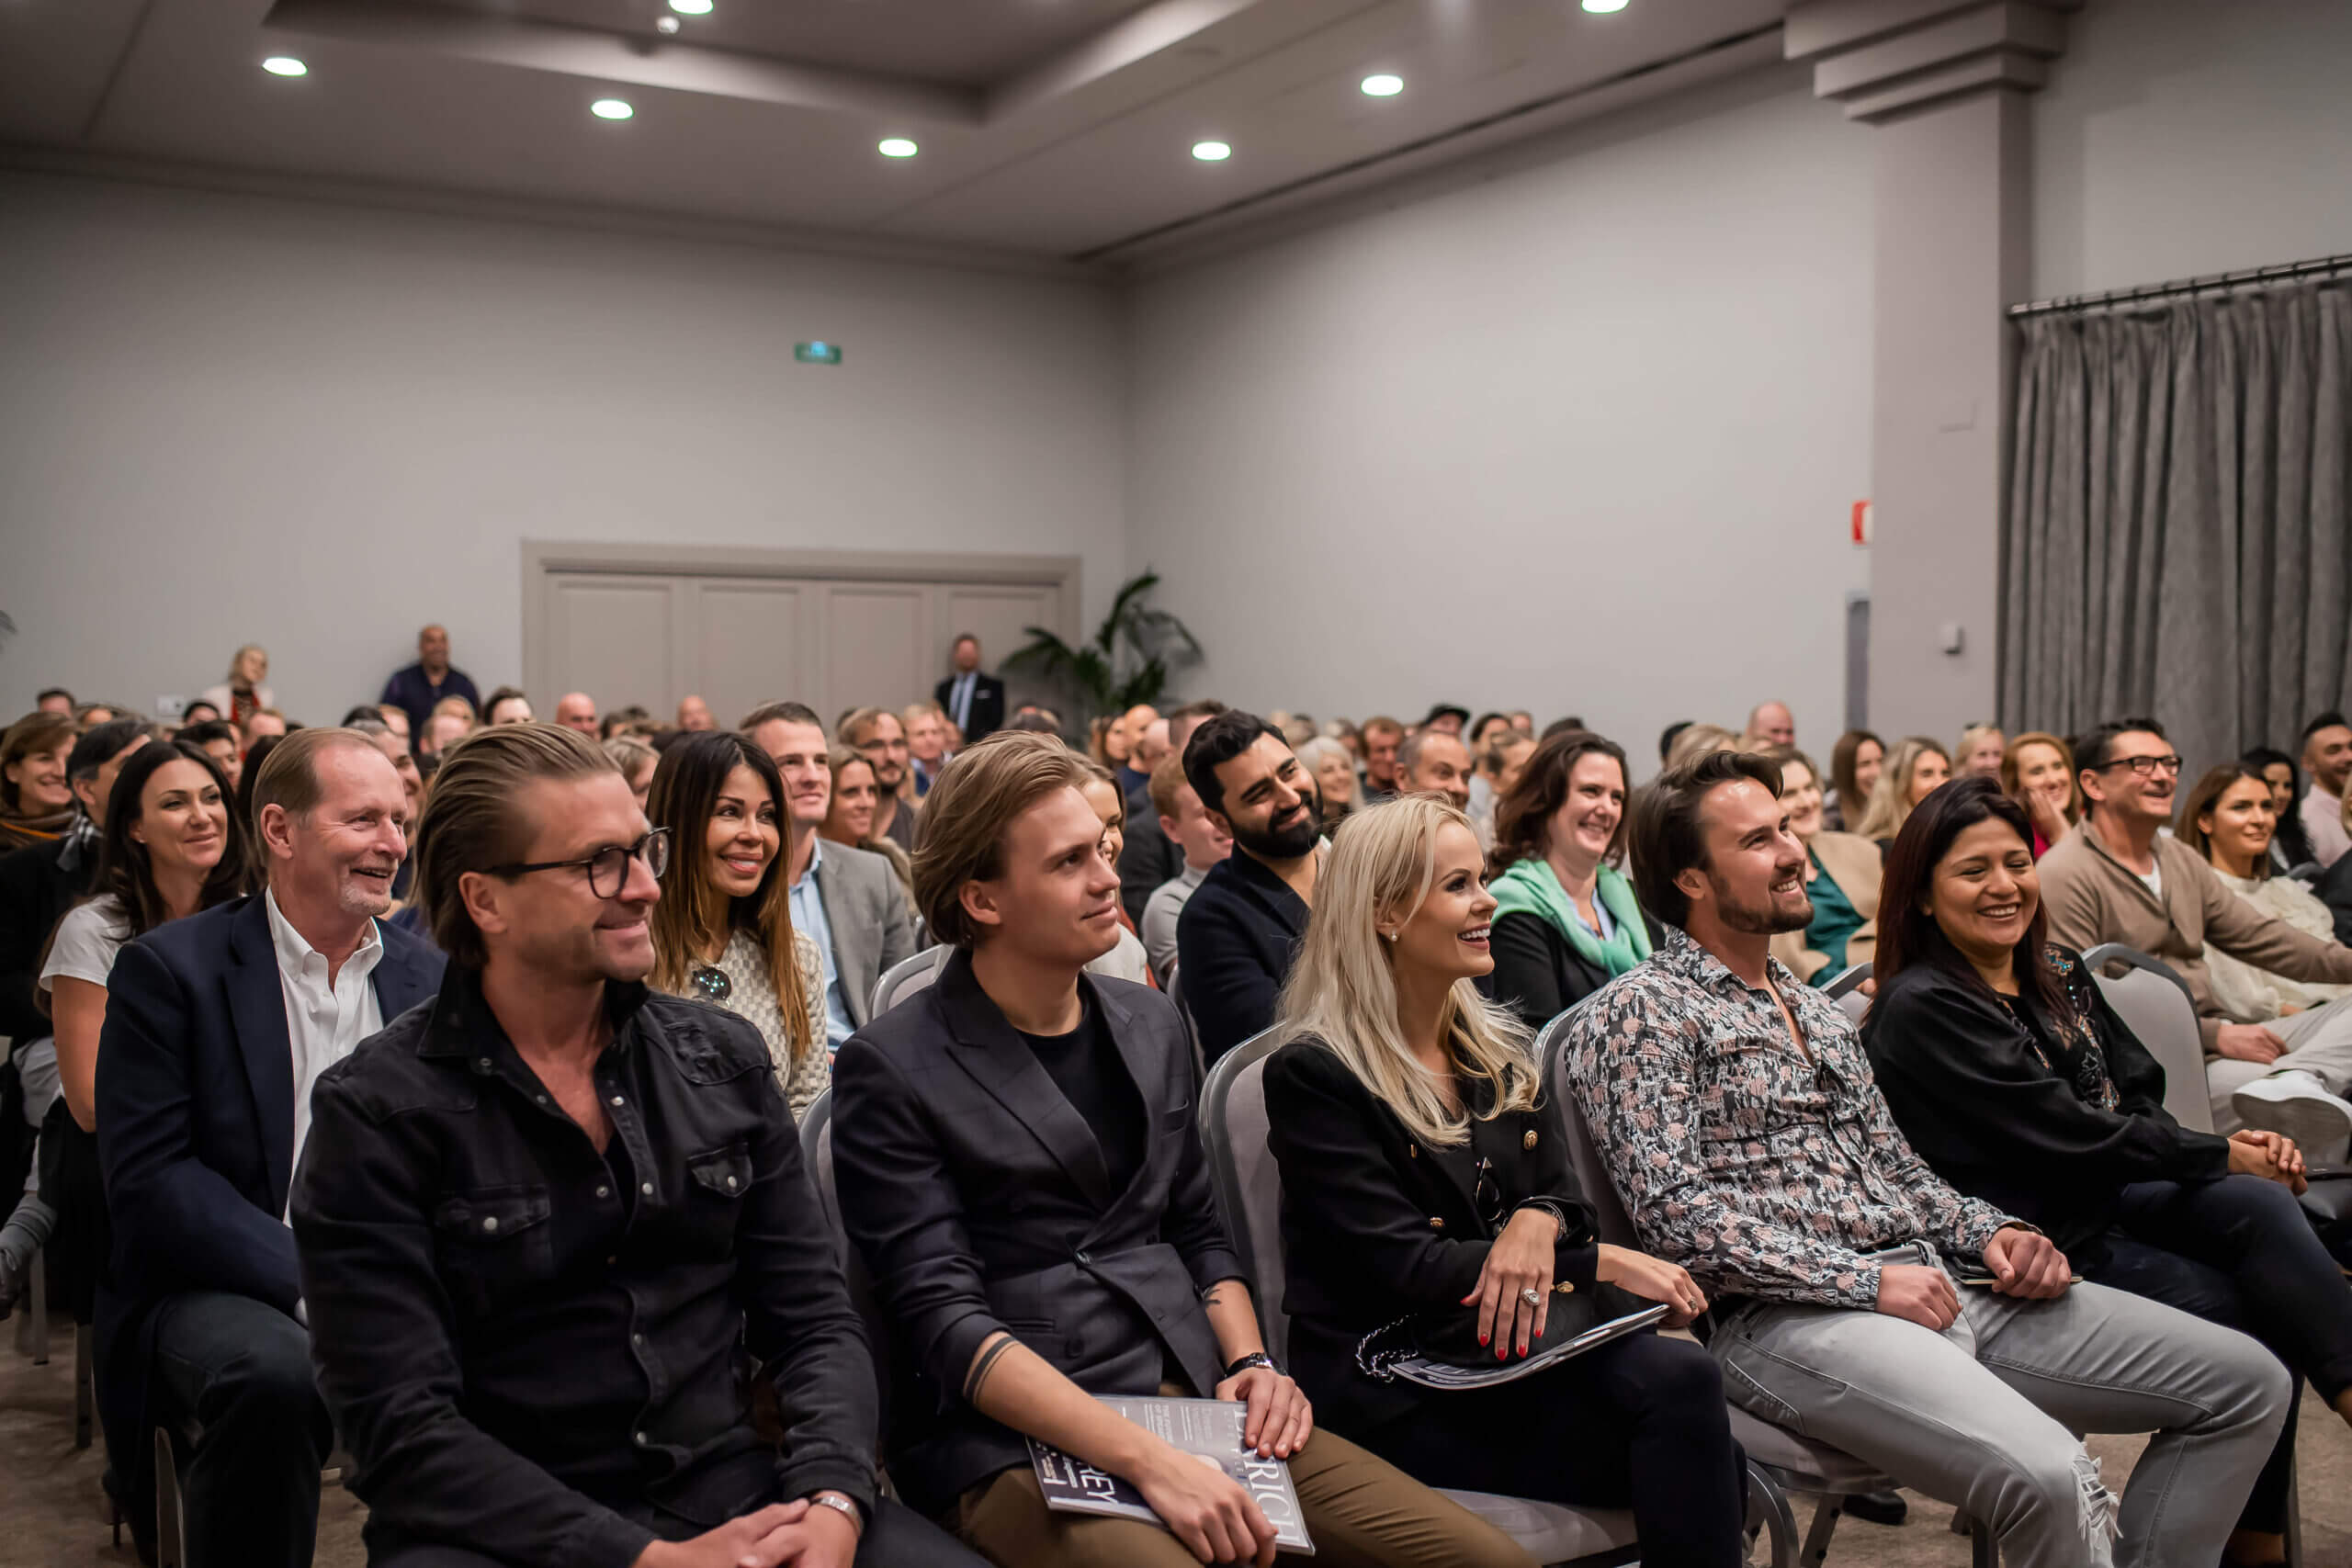 Image of the audience at the tim storey seminar in marbella